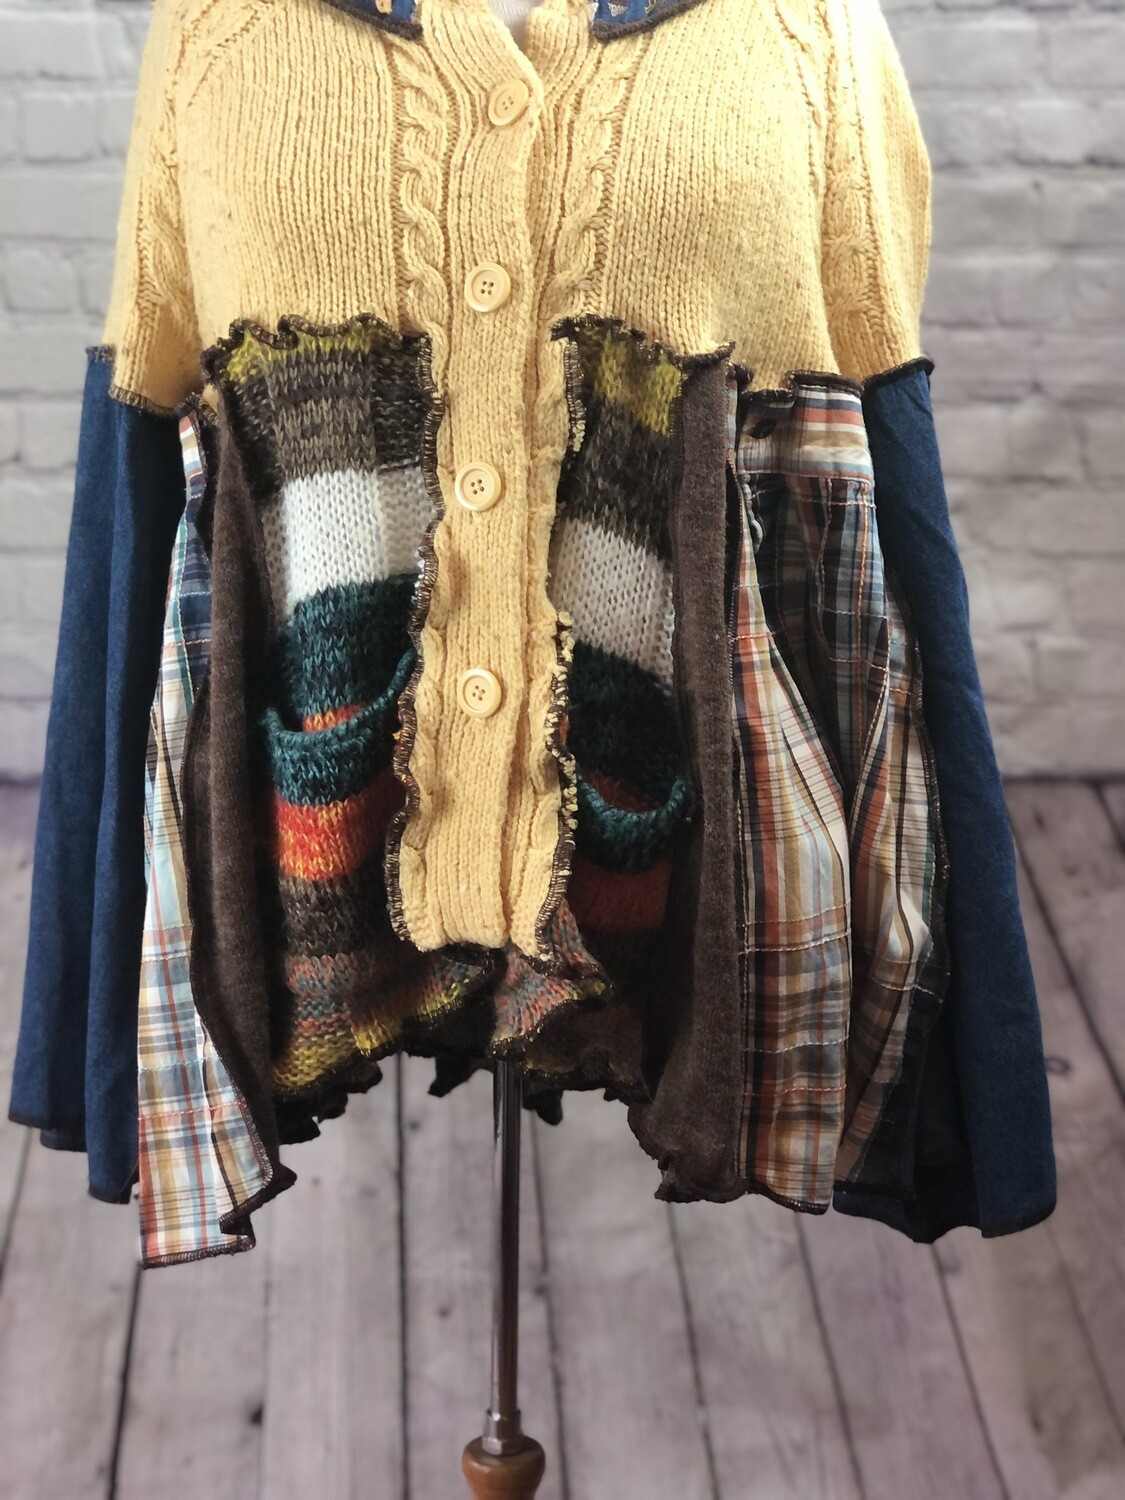 Upcycled Katwise Inspired Mixed Material S Threads Button Up Cardigan Sweater Leaves Rustic Colorful OOAK size 2XL